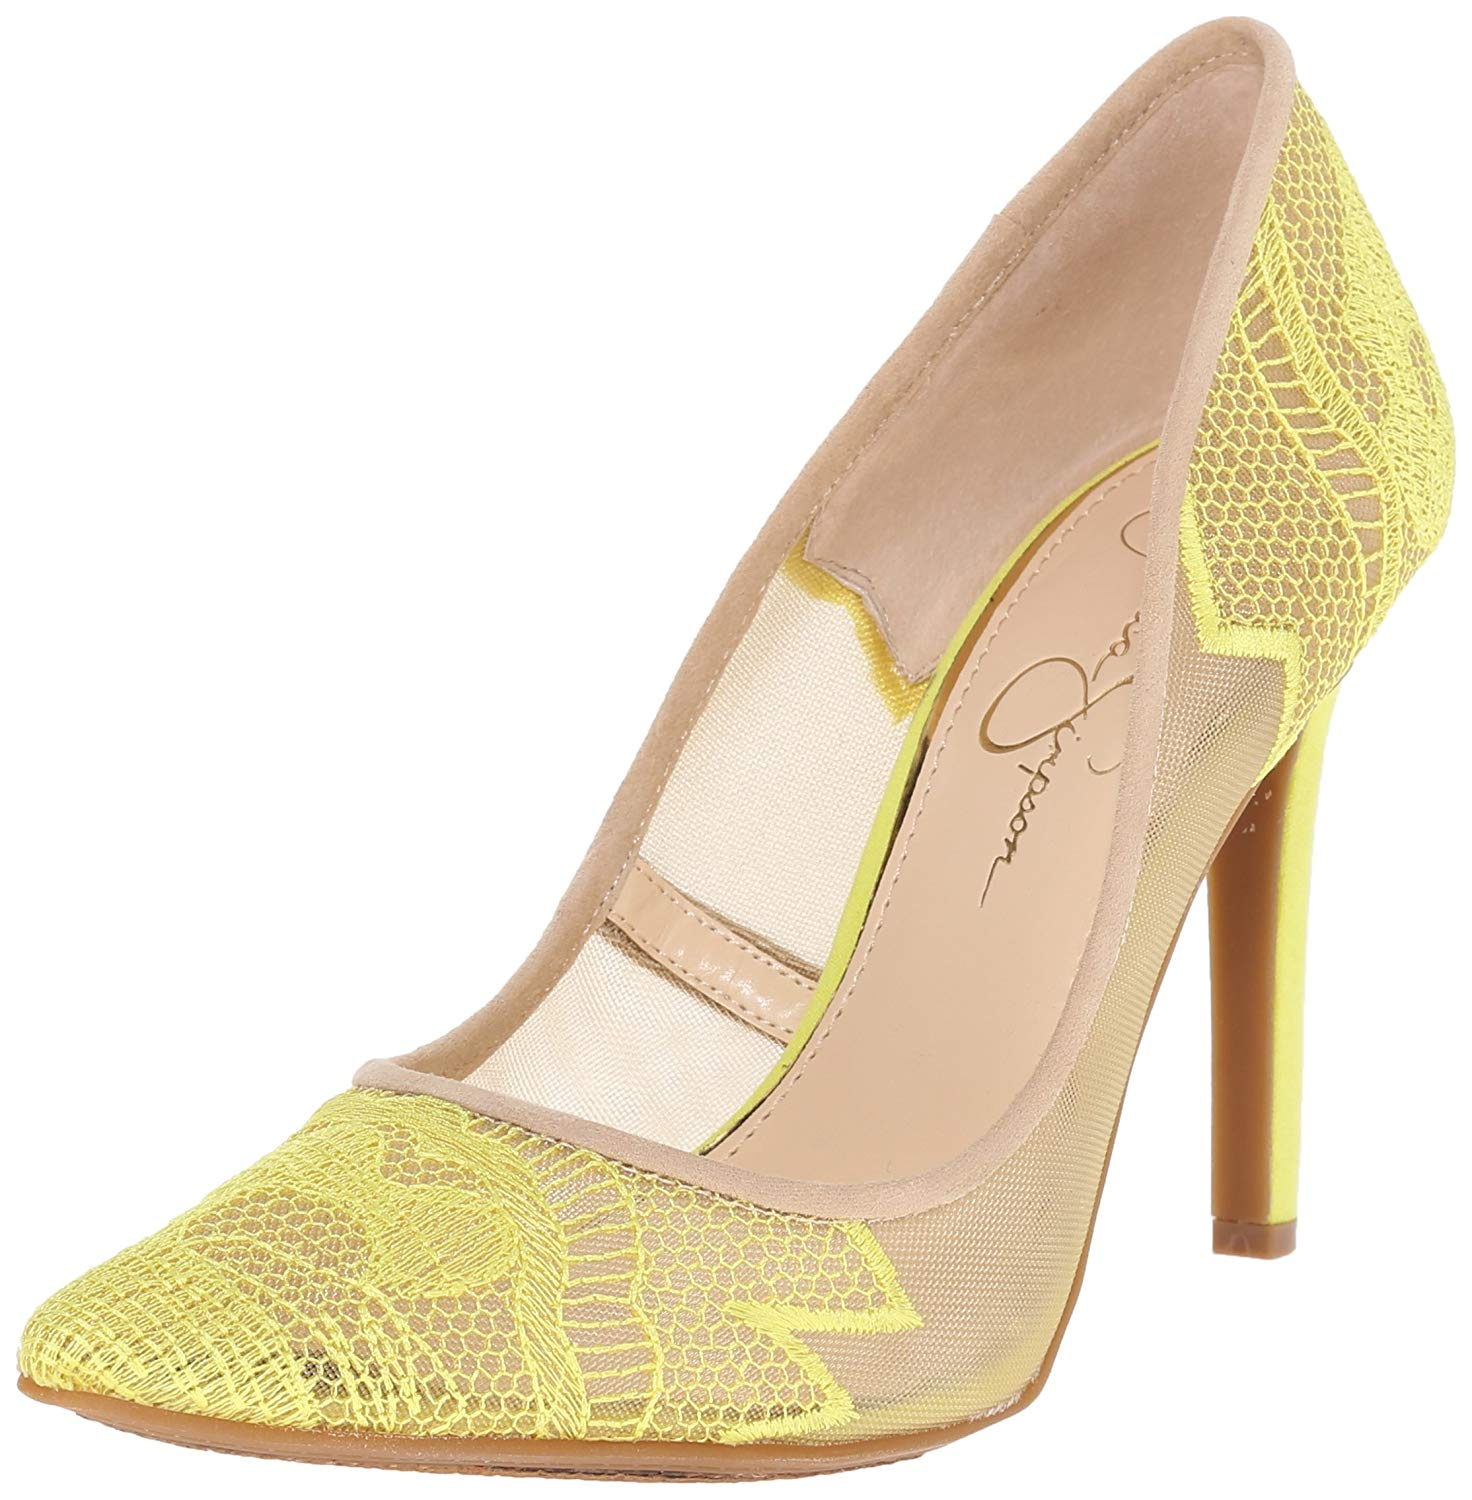 884e6efed4 Jessica Simpson Womens Camba Pointed Toe Classic Pumps, Sheer Yellow ...